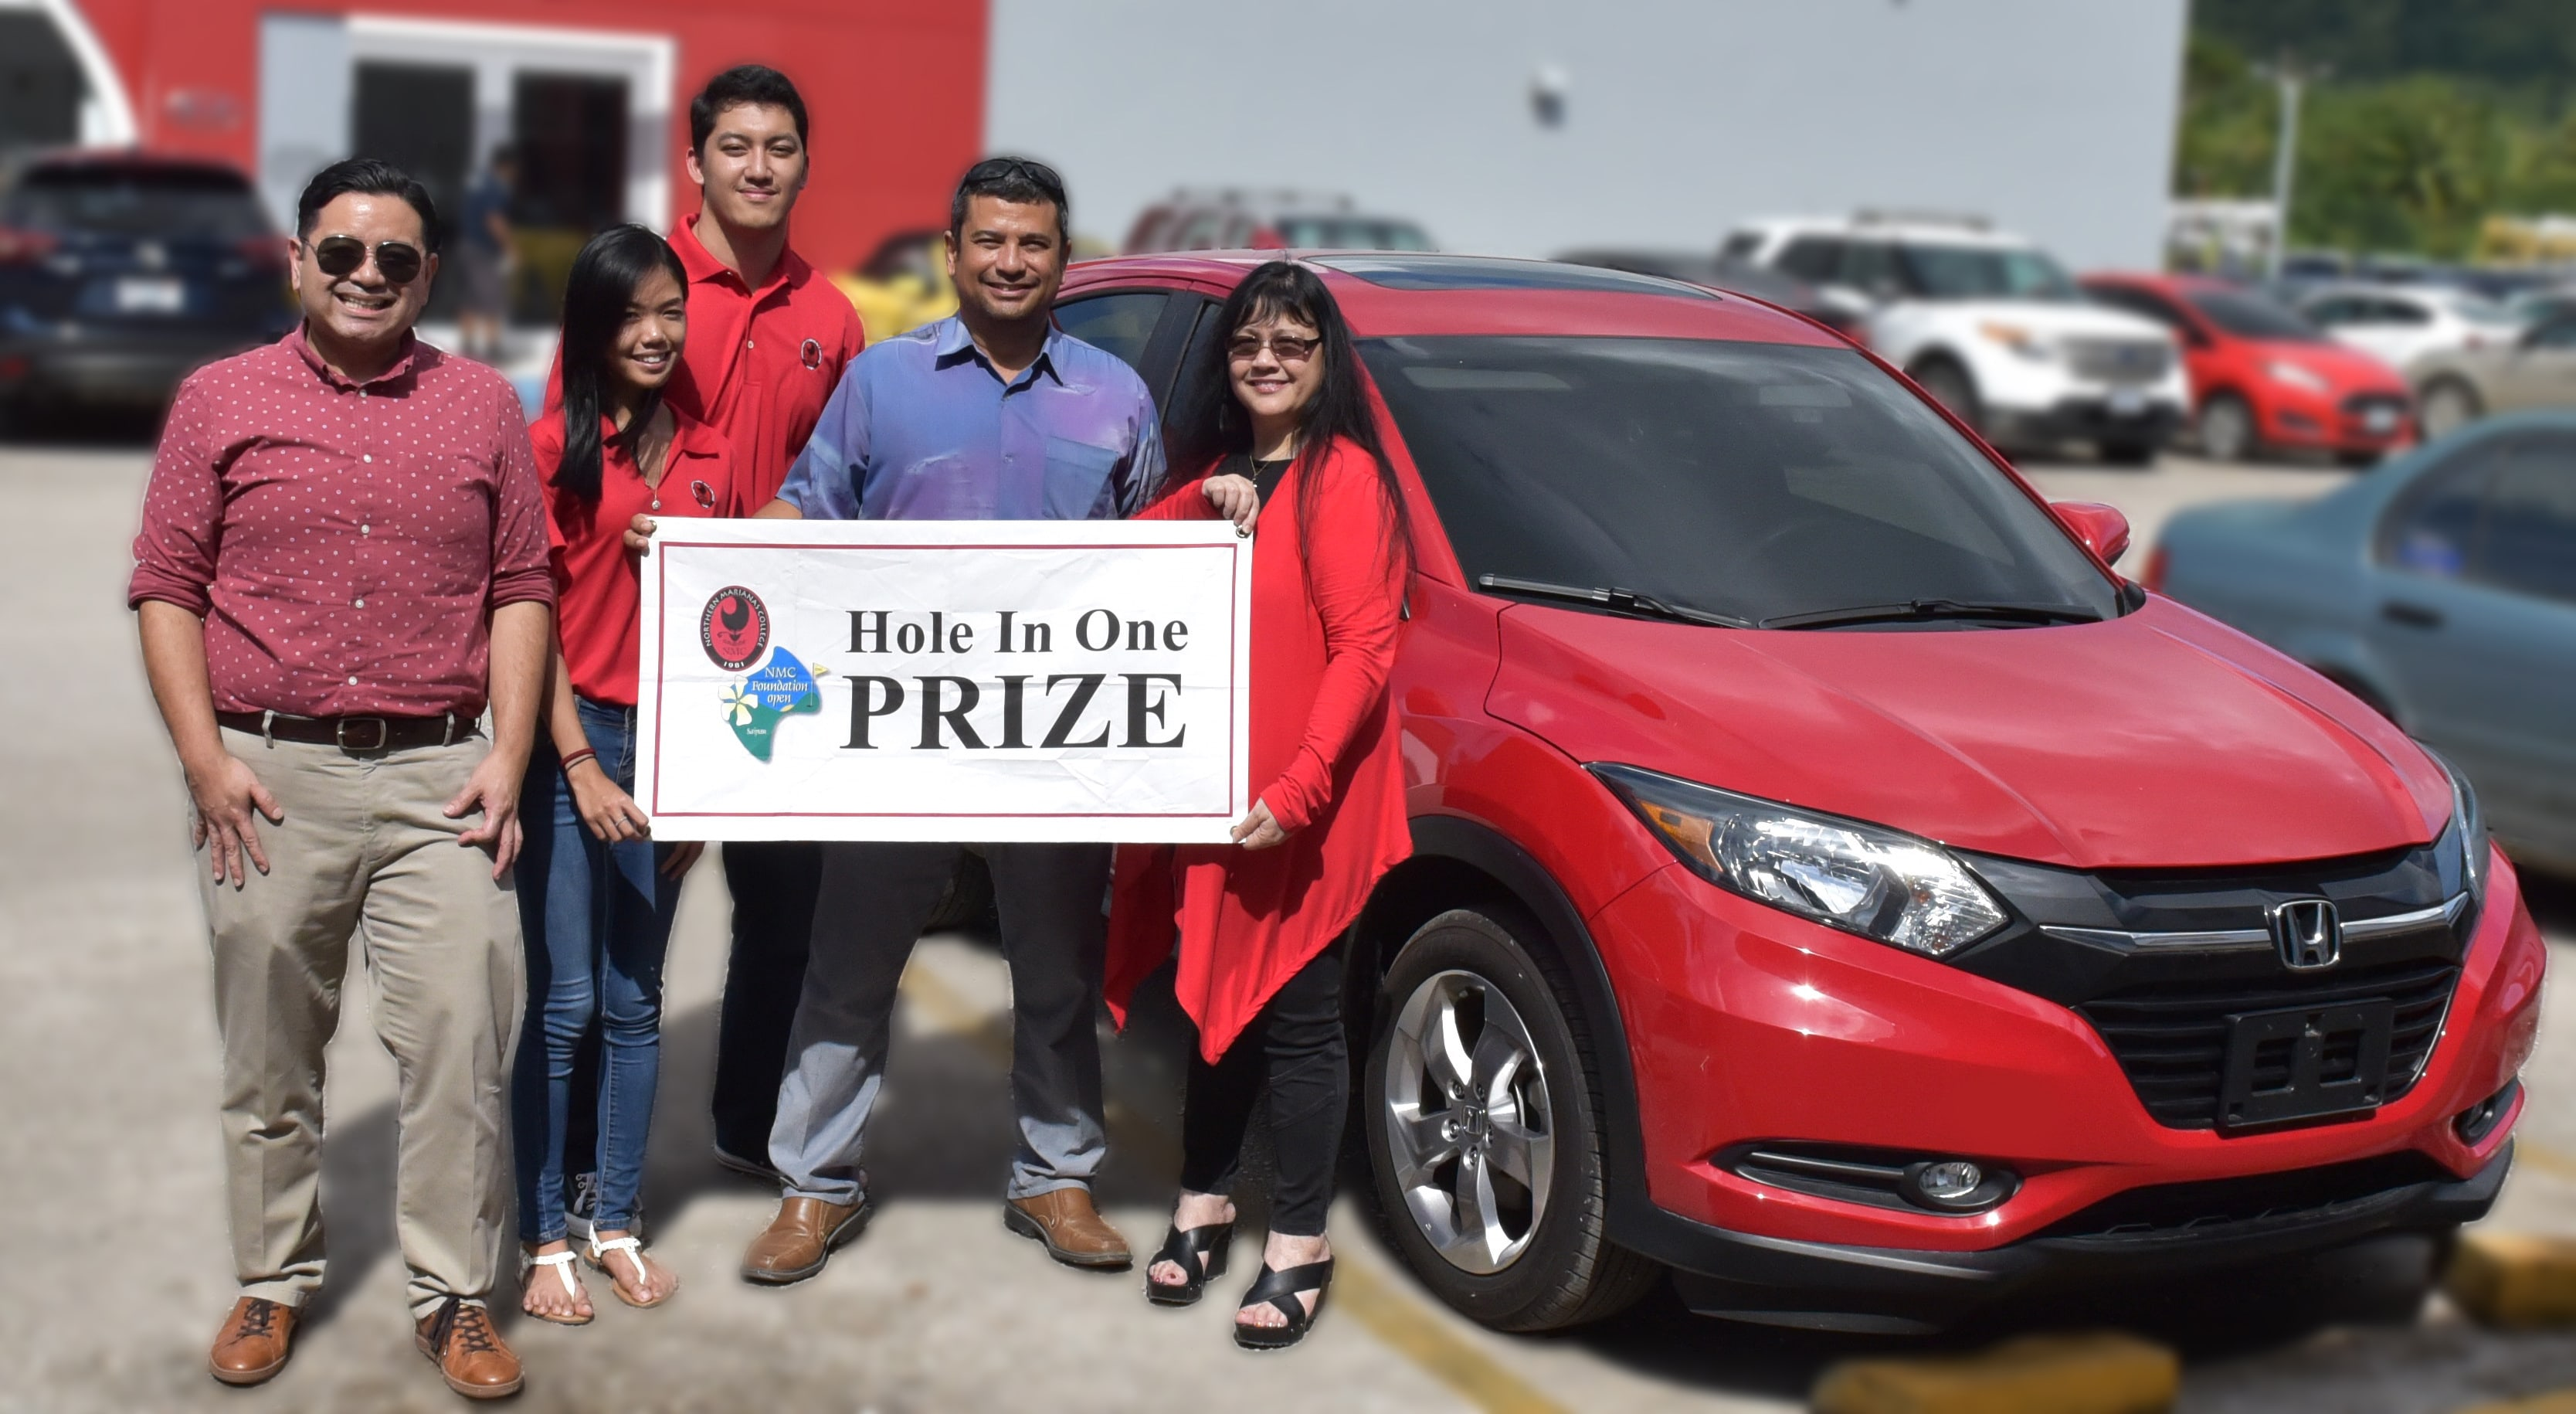 Joeten Motors has announced that it is offering a brand new Honda HRV as a hole-in-one prize in the upcoming 15th Annual NMC Foundation Golf Tournament.